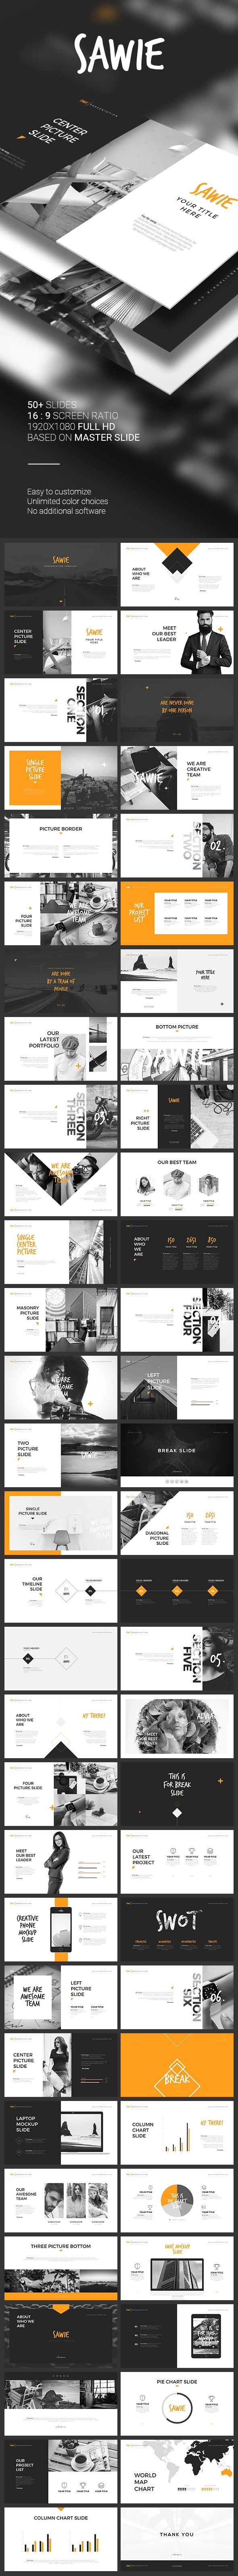 SAWIE PowerPoint Template #powerpoint #pptx #chart #lettering • Download ➝ https://graphicriver.net/item/sawie-powerpoint-template/18705123?ref=pxcr